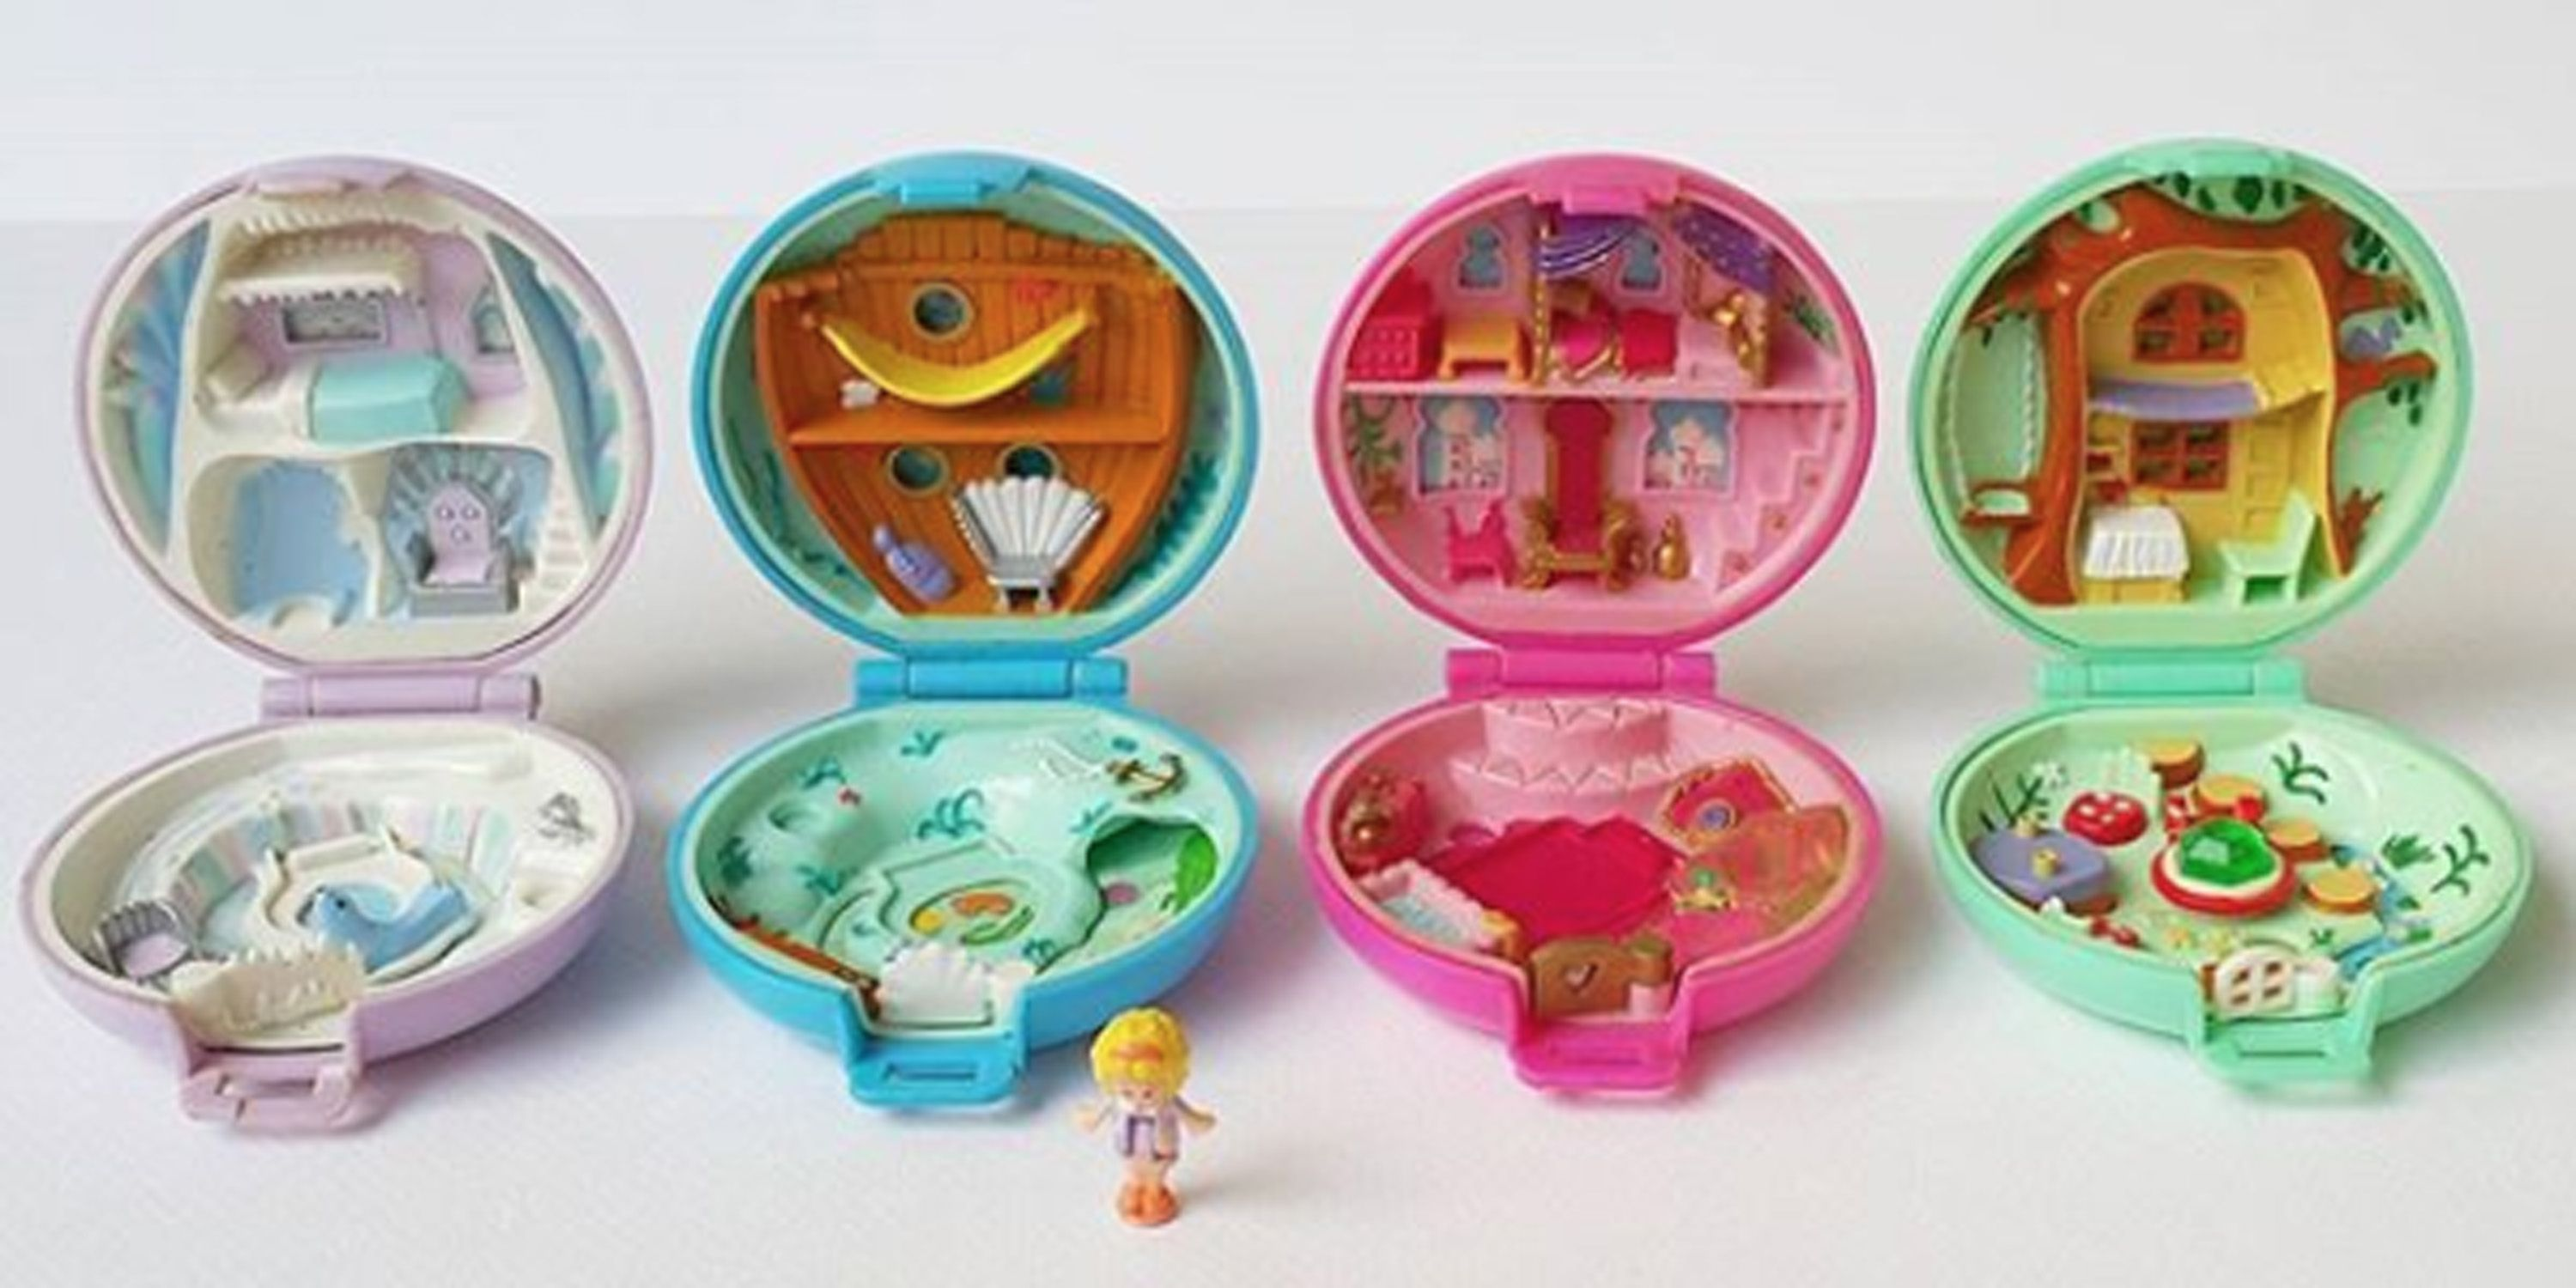 Polly pocket original worlds